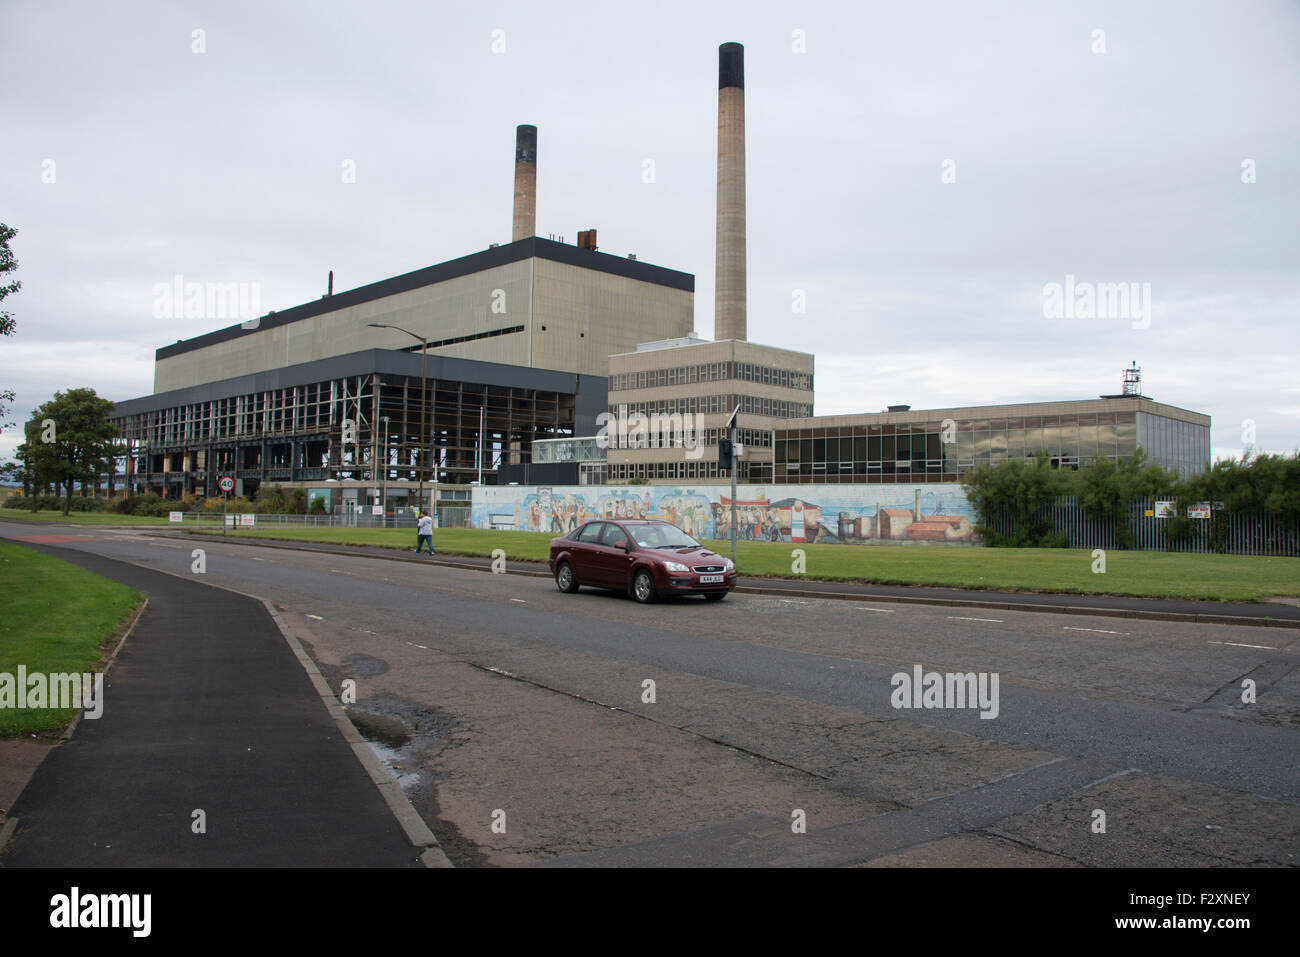 Edinburgh, Scotland. 23rd September, 2015. Cockenzie Power Station on the East Lothian coastline will be demolished - Stock Image